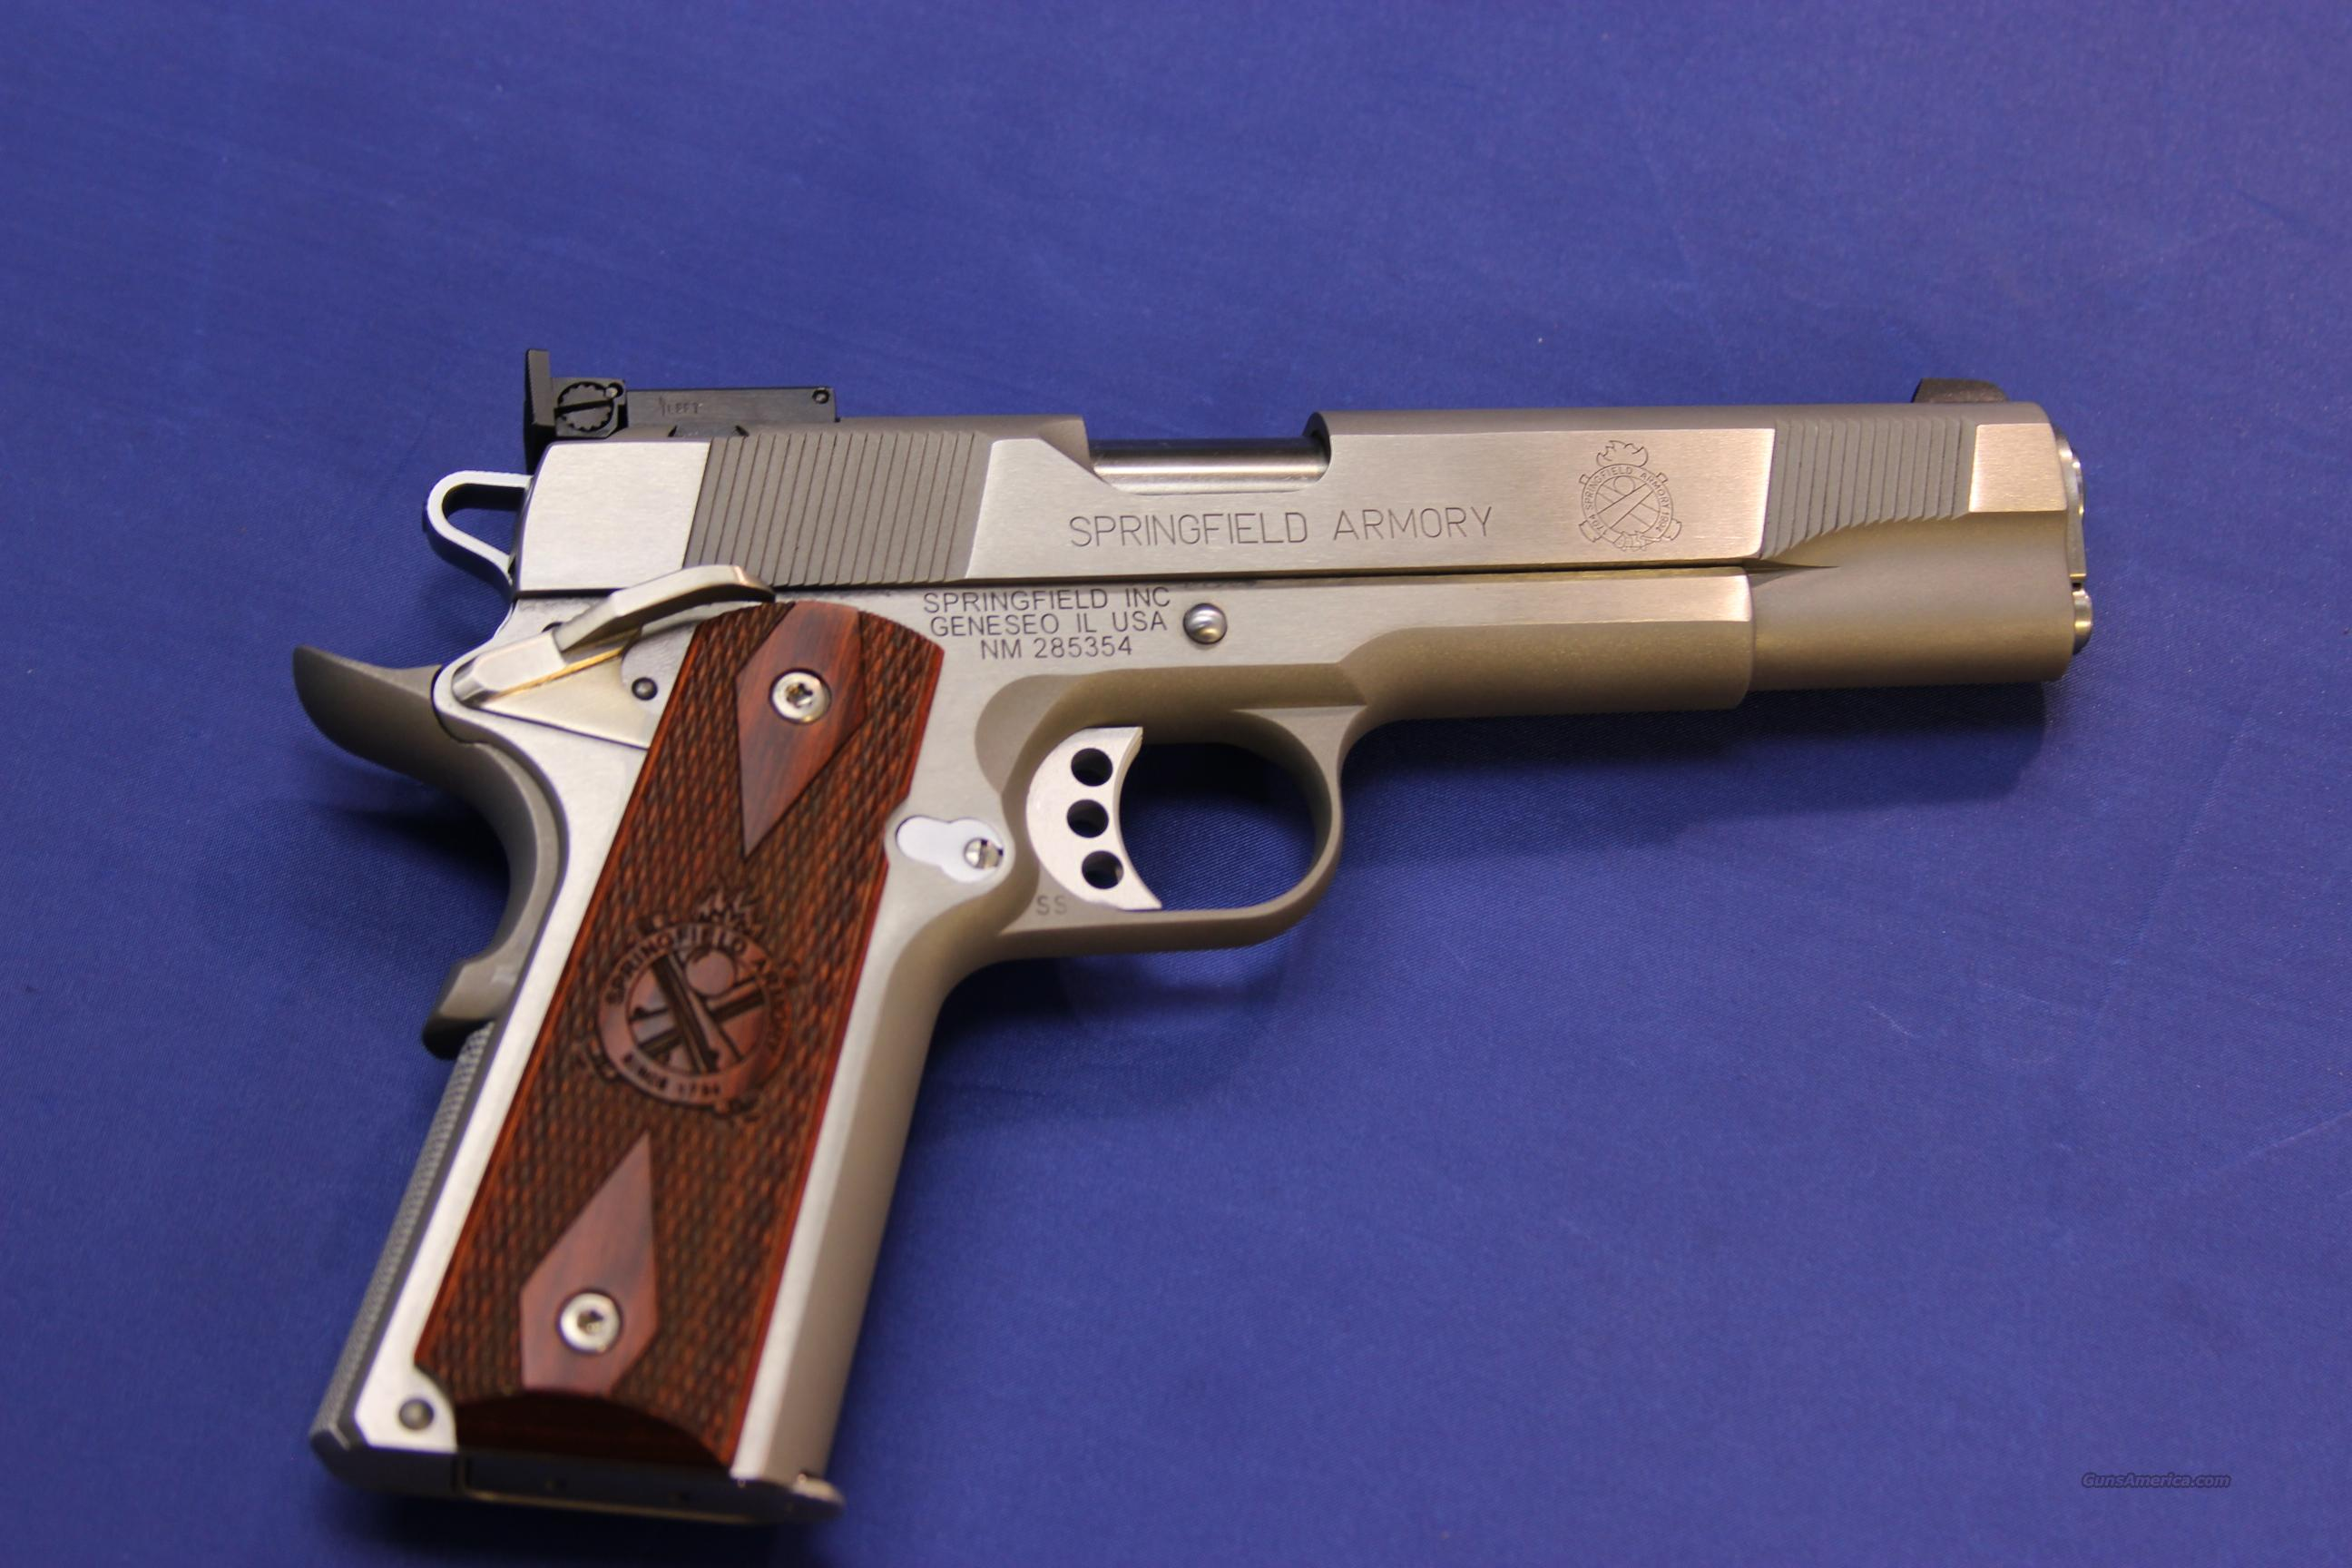 SPRINGFIELD 1911-A1 STAINLESS TARGET .45 ACP - NEW!!  Guns > Pistols > Springfield Armory Pistols > 1911 Type